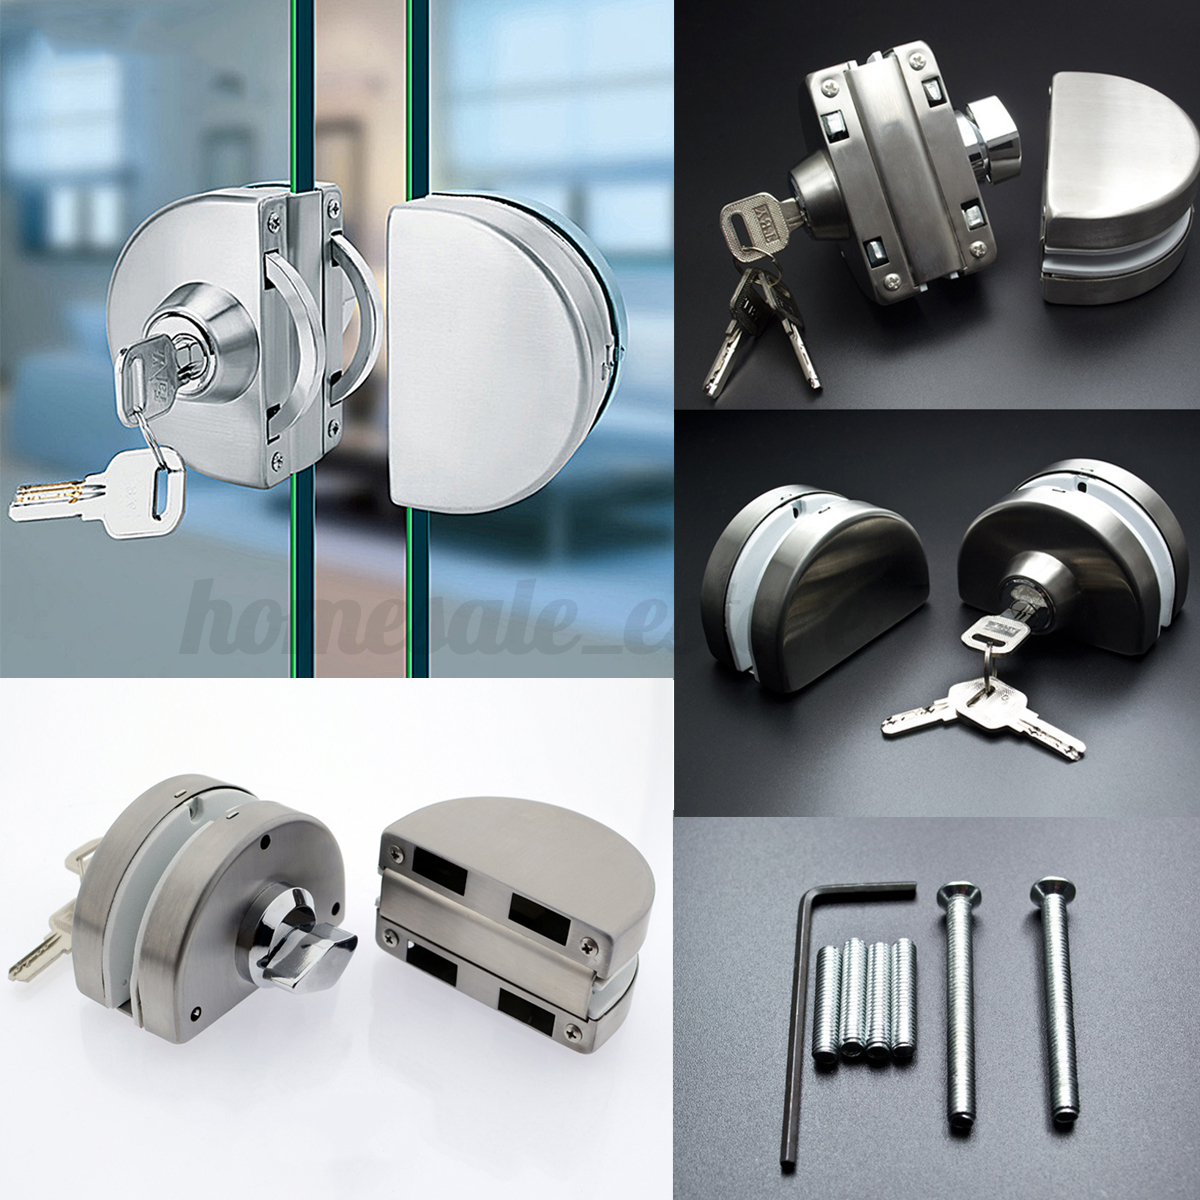 Mm glass door lock stainless steel double bolts